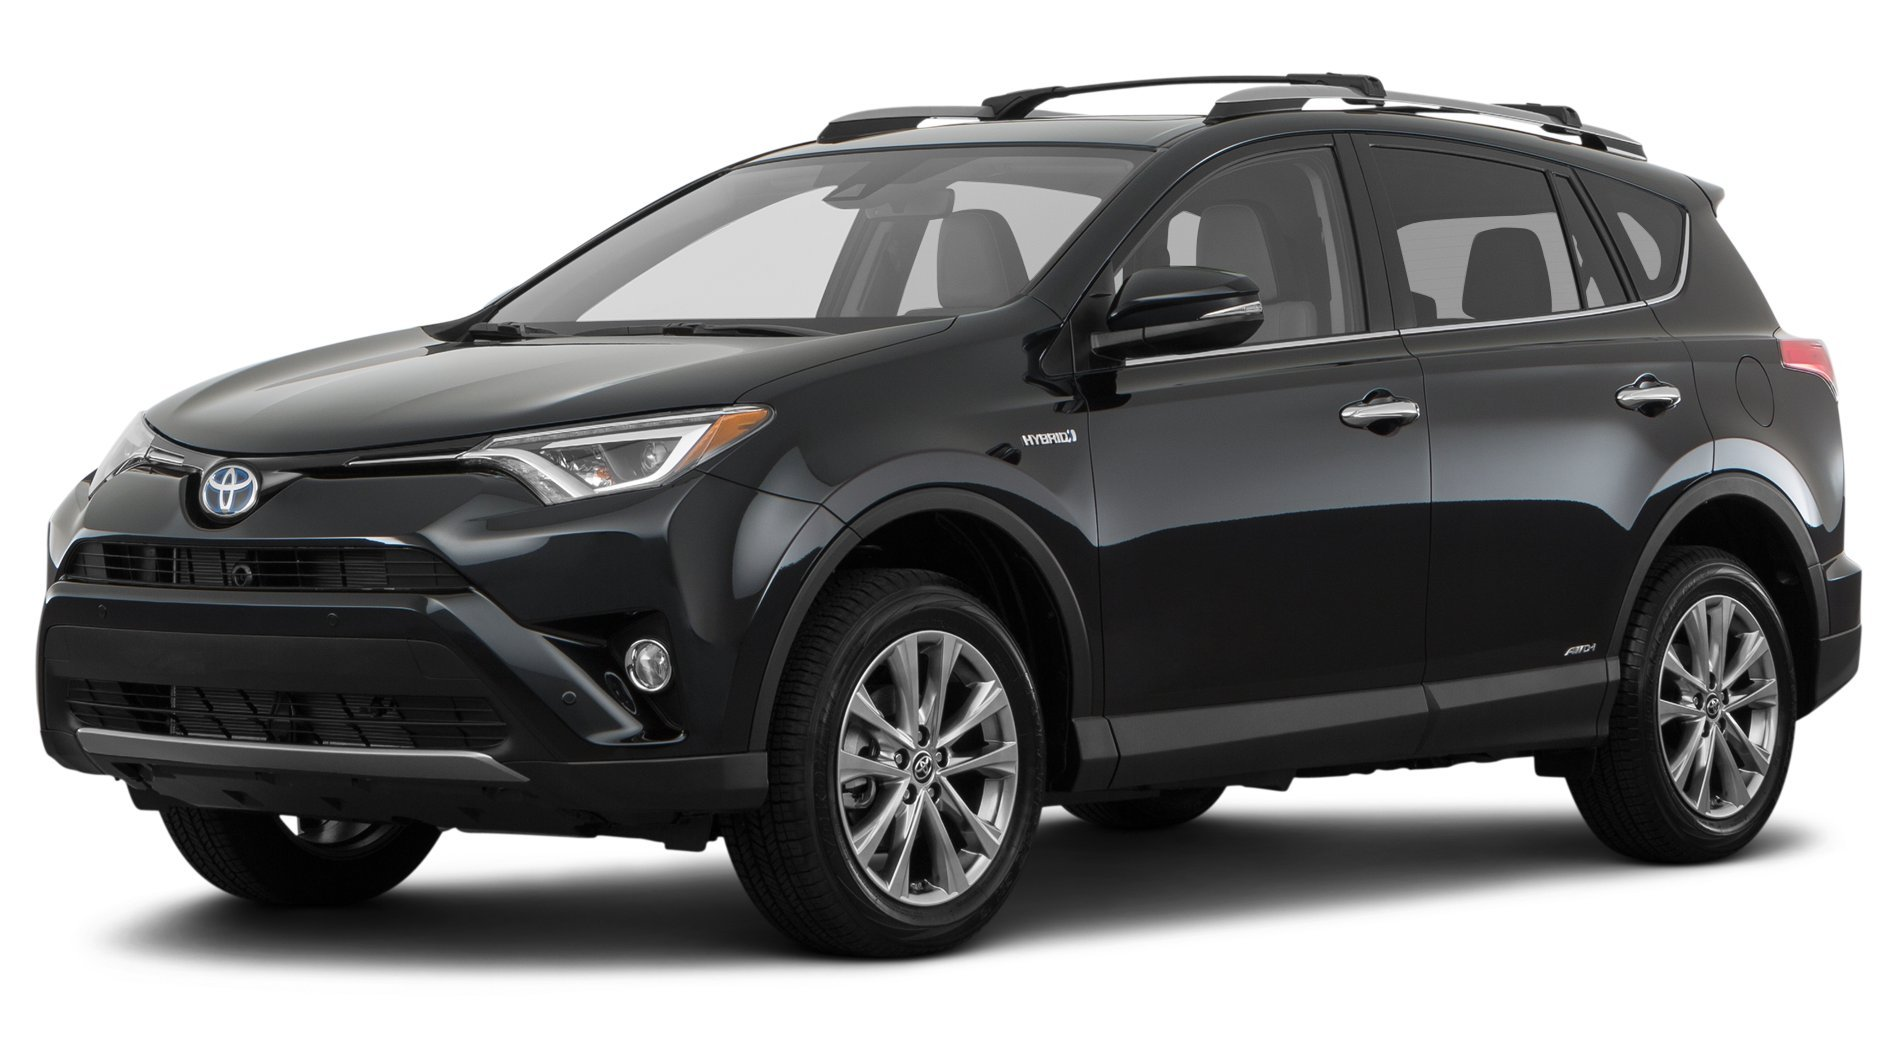 2017 toyota rav4 reviews images and specs vehicles. Black Bedroom Furniture Sets. Home Design Ideas